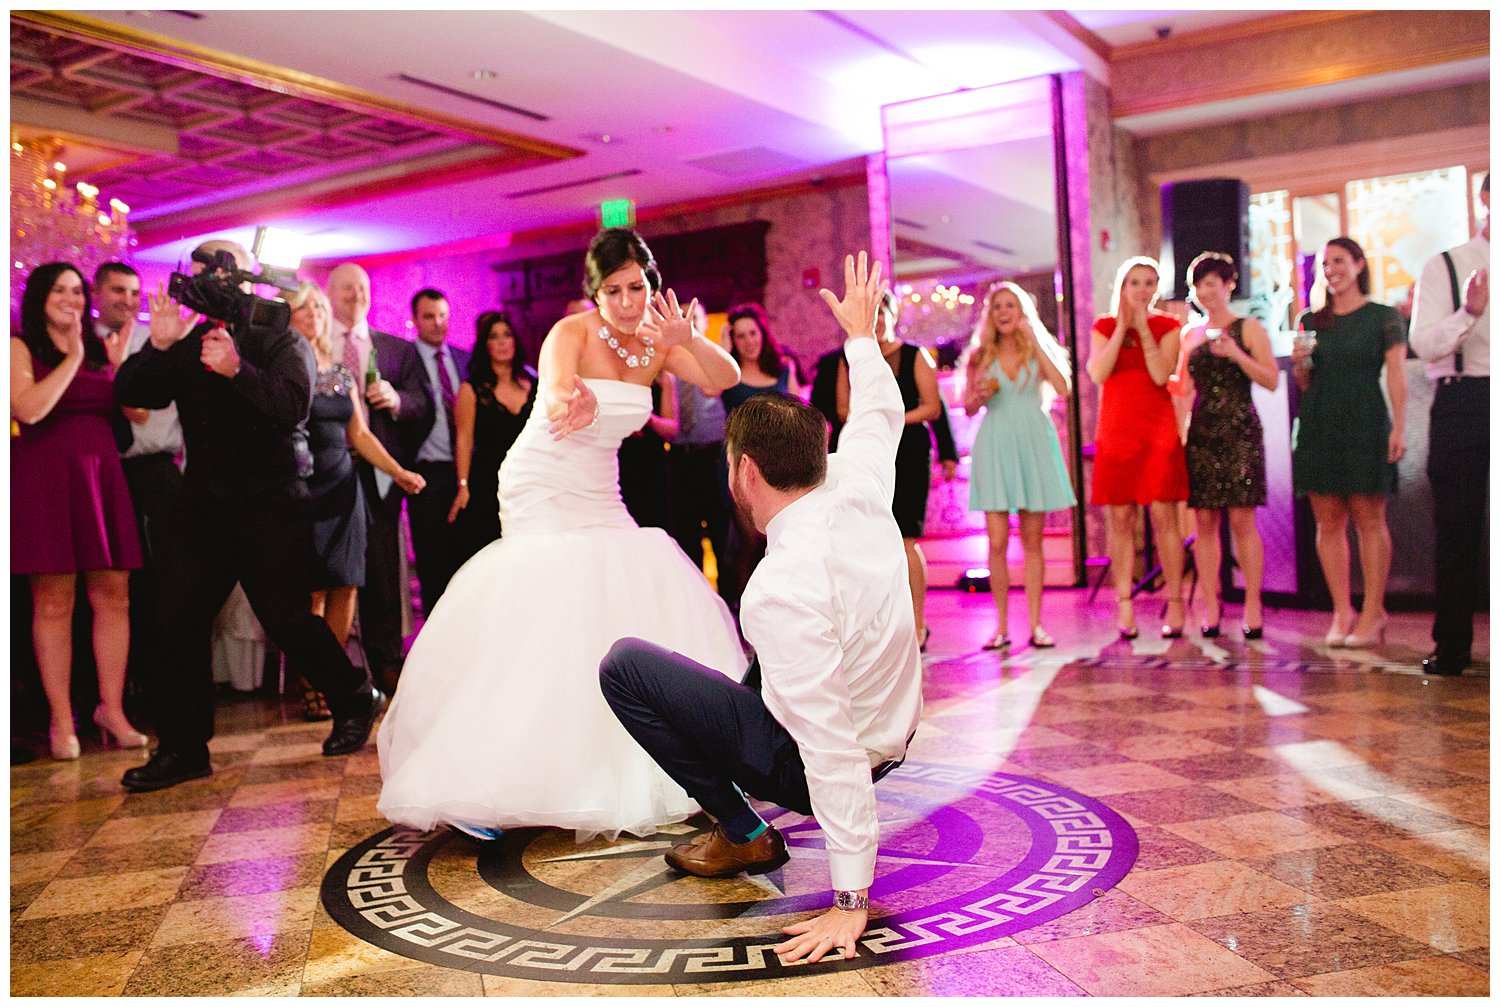 Kelly and Mike Wedding, Seasons, Washington Township, New Jersey ...